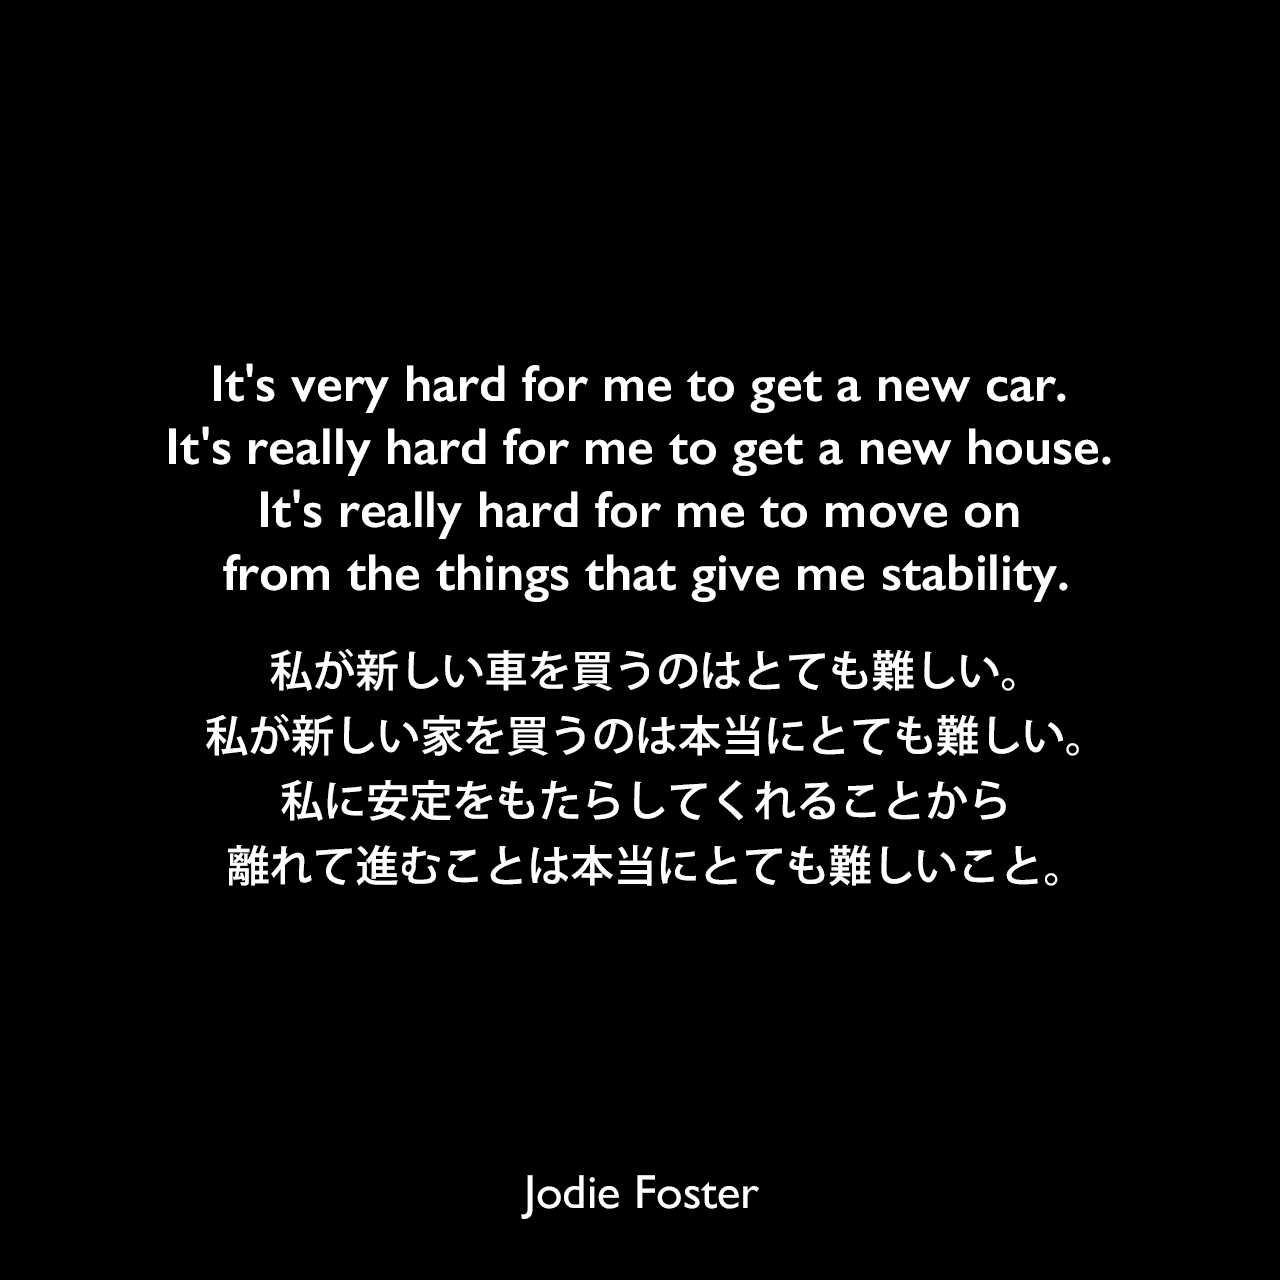 It's very hard for me to get a new car. It's really hard for me to get a new house. It's really hard for me to move on from the things that give me stability.私が新しい車を買うのはとても難しい。私が新しい家を買うのは本当にとても難しい。私に安定をもたらしてくれることから離れて進むことは本当にとても難しいこと。Jodie Foster